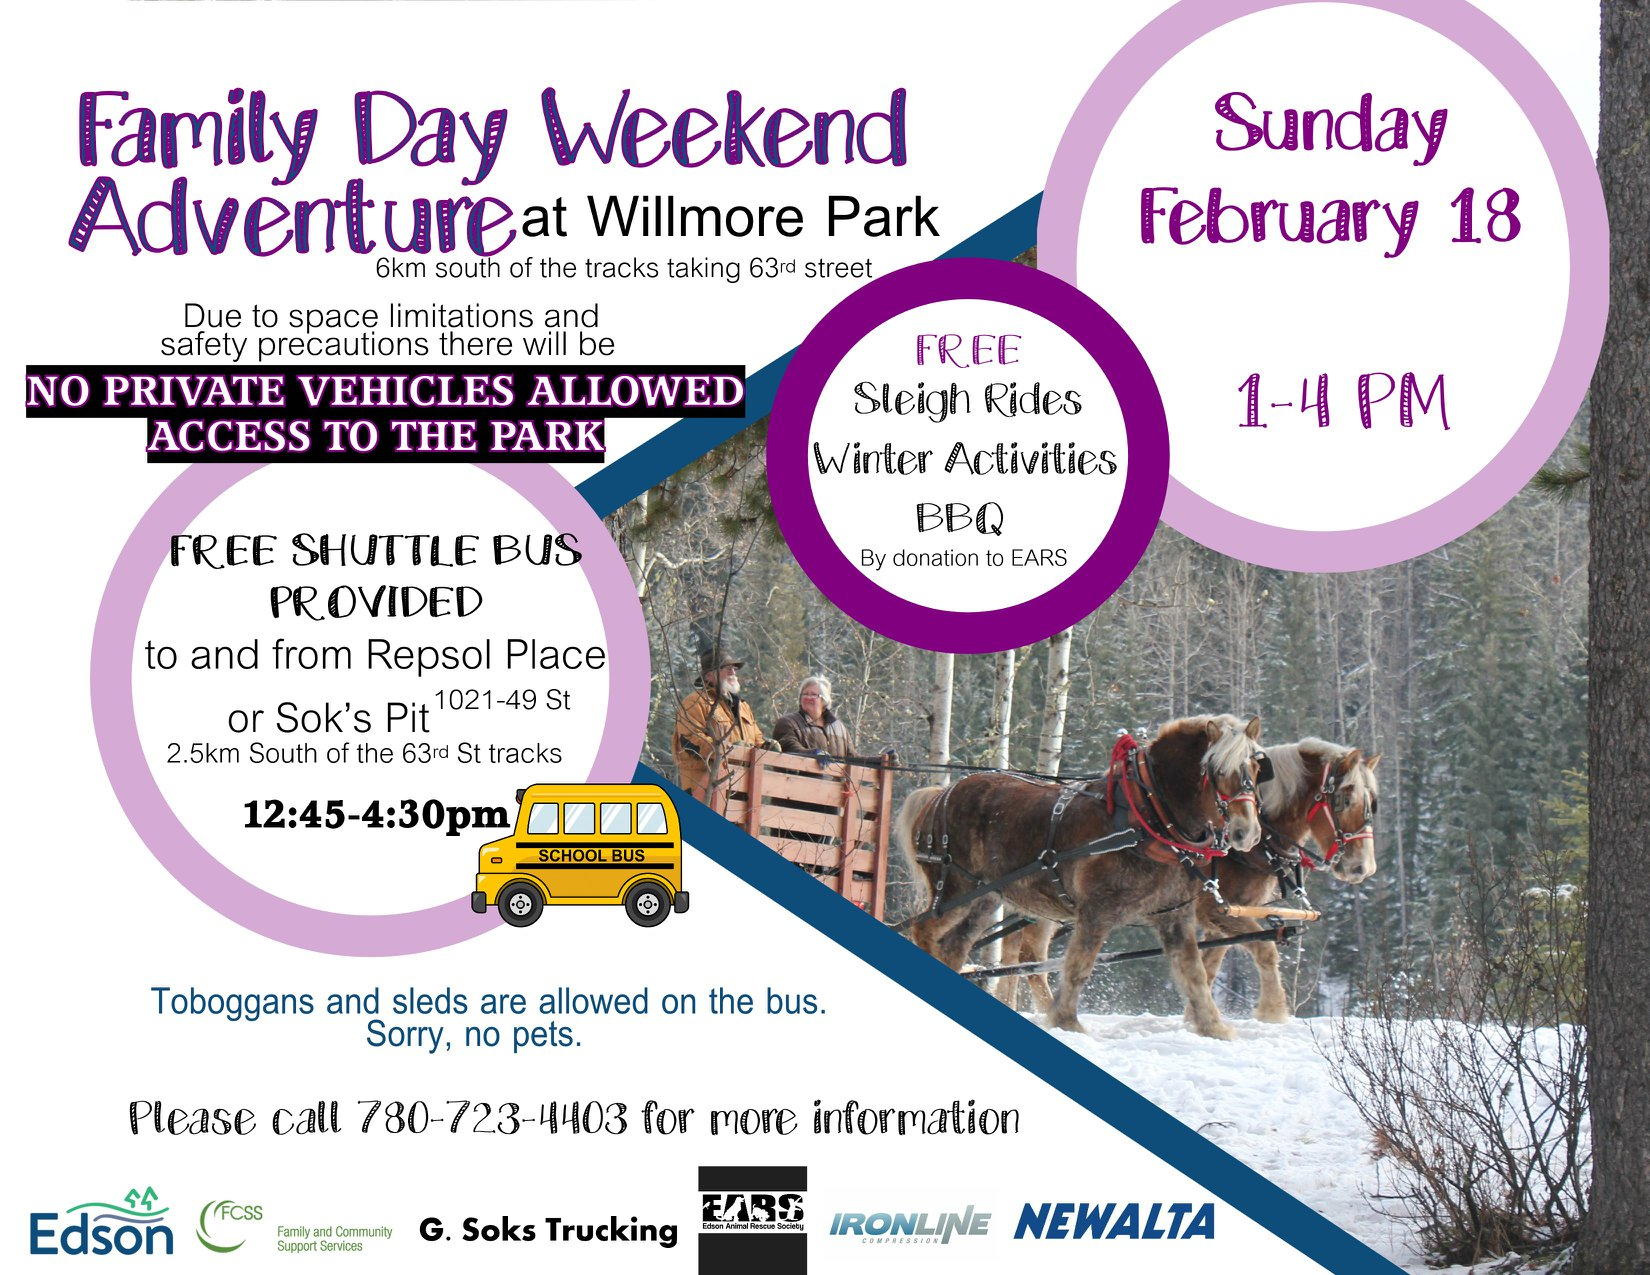 Family Day Weekend Adventure @ Willmore Park